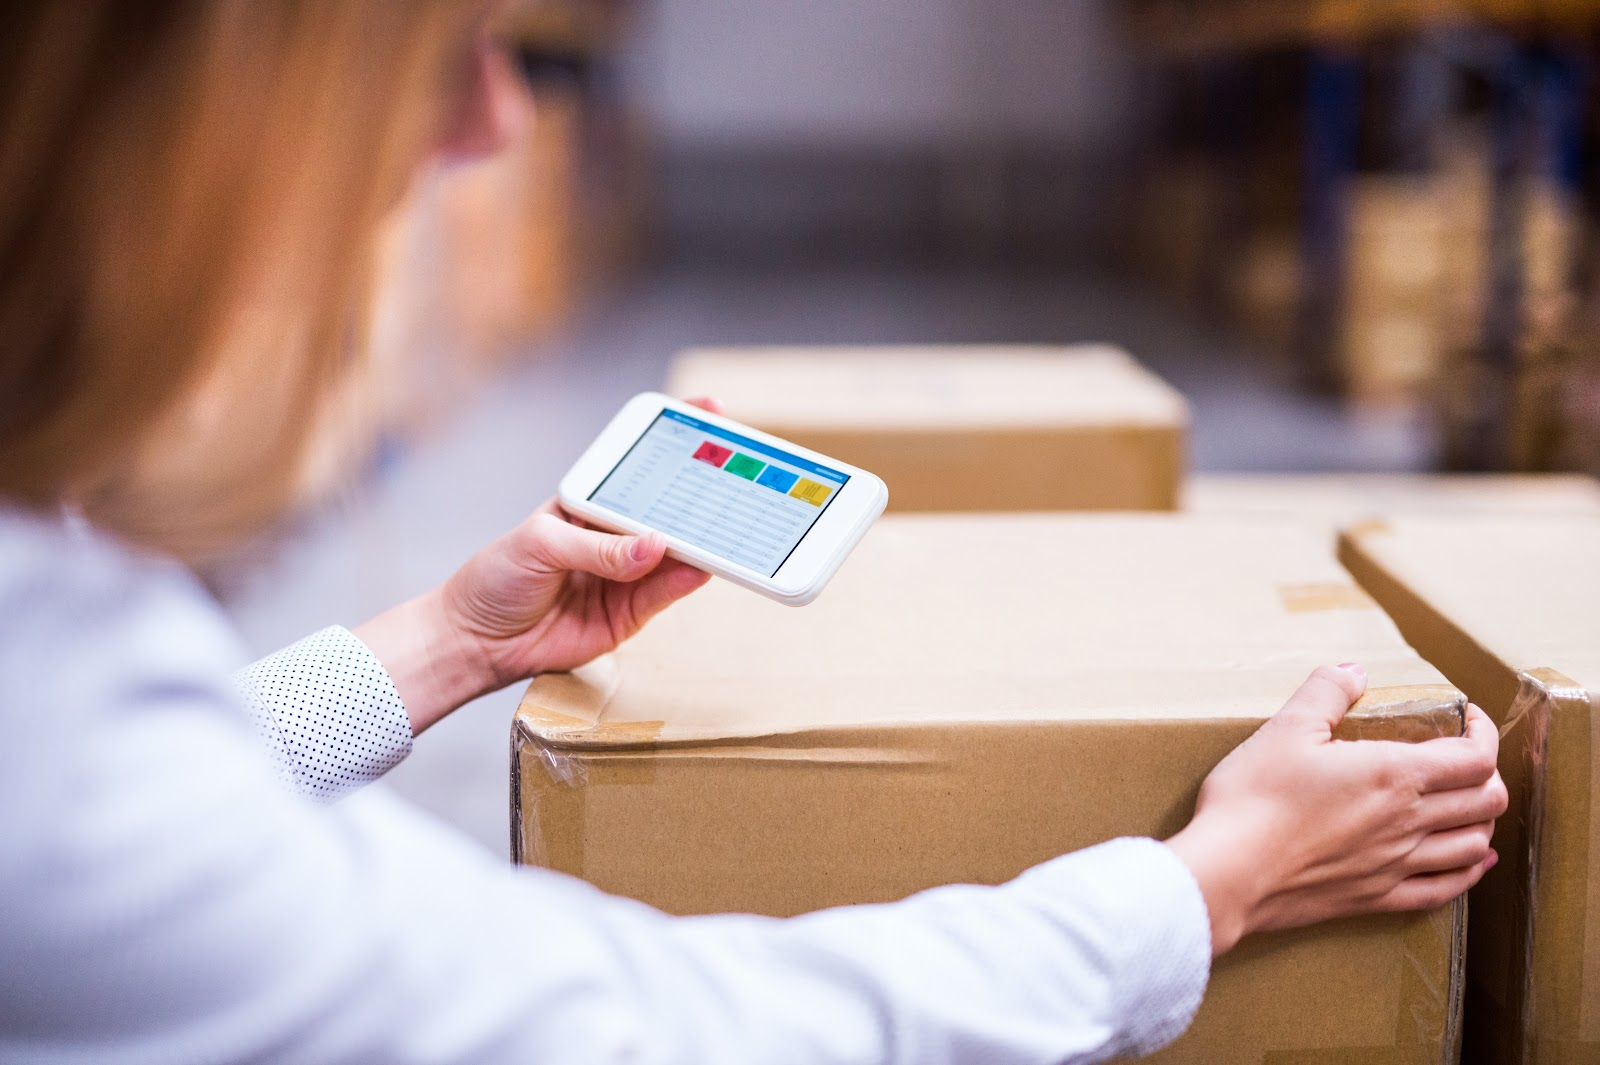 AI models can enhance business systems to ensure purchasing, warehousing and delivery are managed more smoothly to satisfy ecommerce customers.